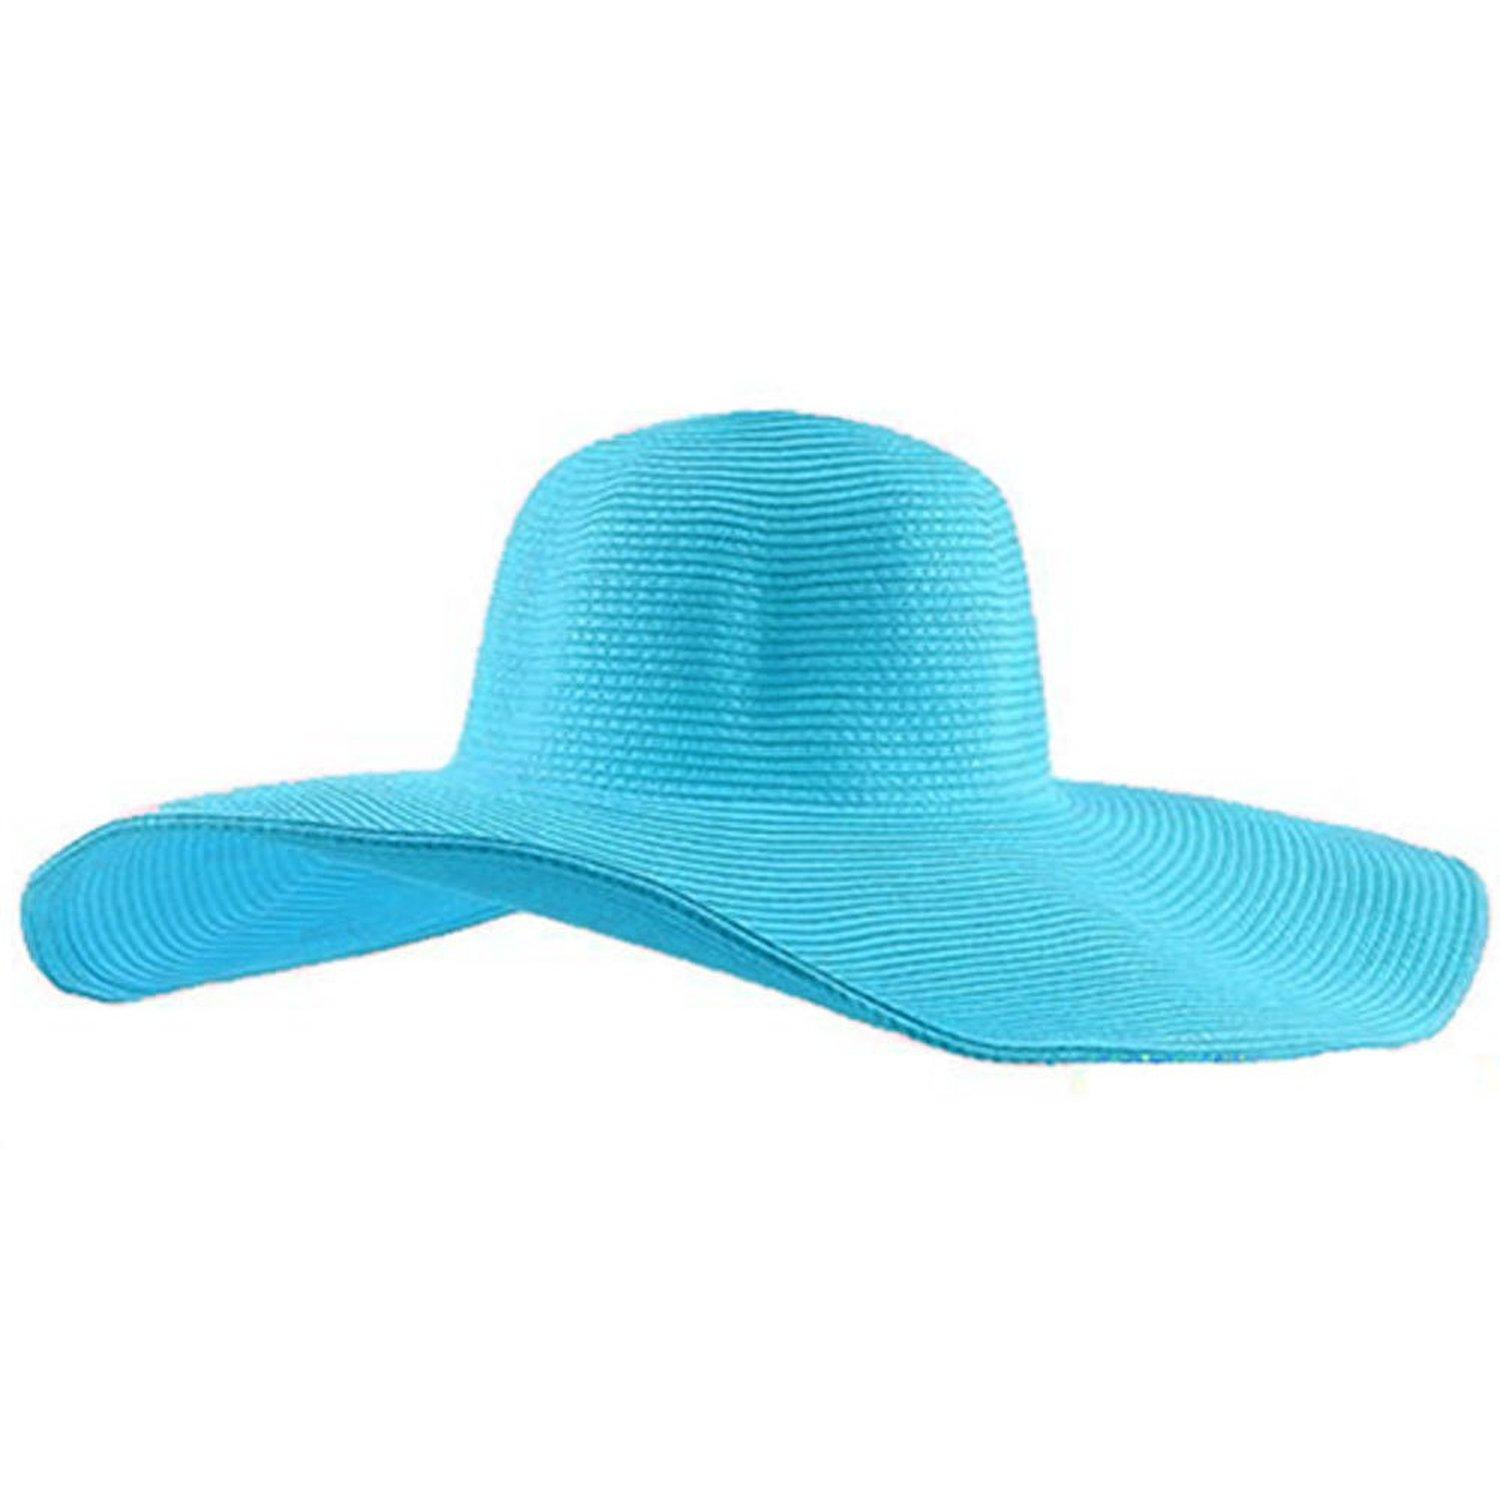 Wholesale Women Cute Summer Straw Beach Hat Wide Large Brim Foldable Sun Hat  Dark Blue Tilley Hats Mens Hats From Newcollection 984ee5258d7